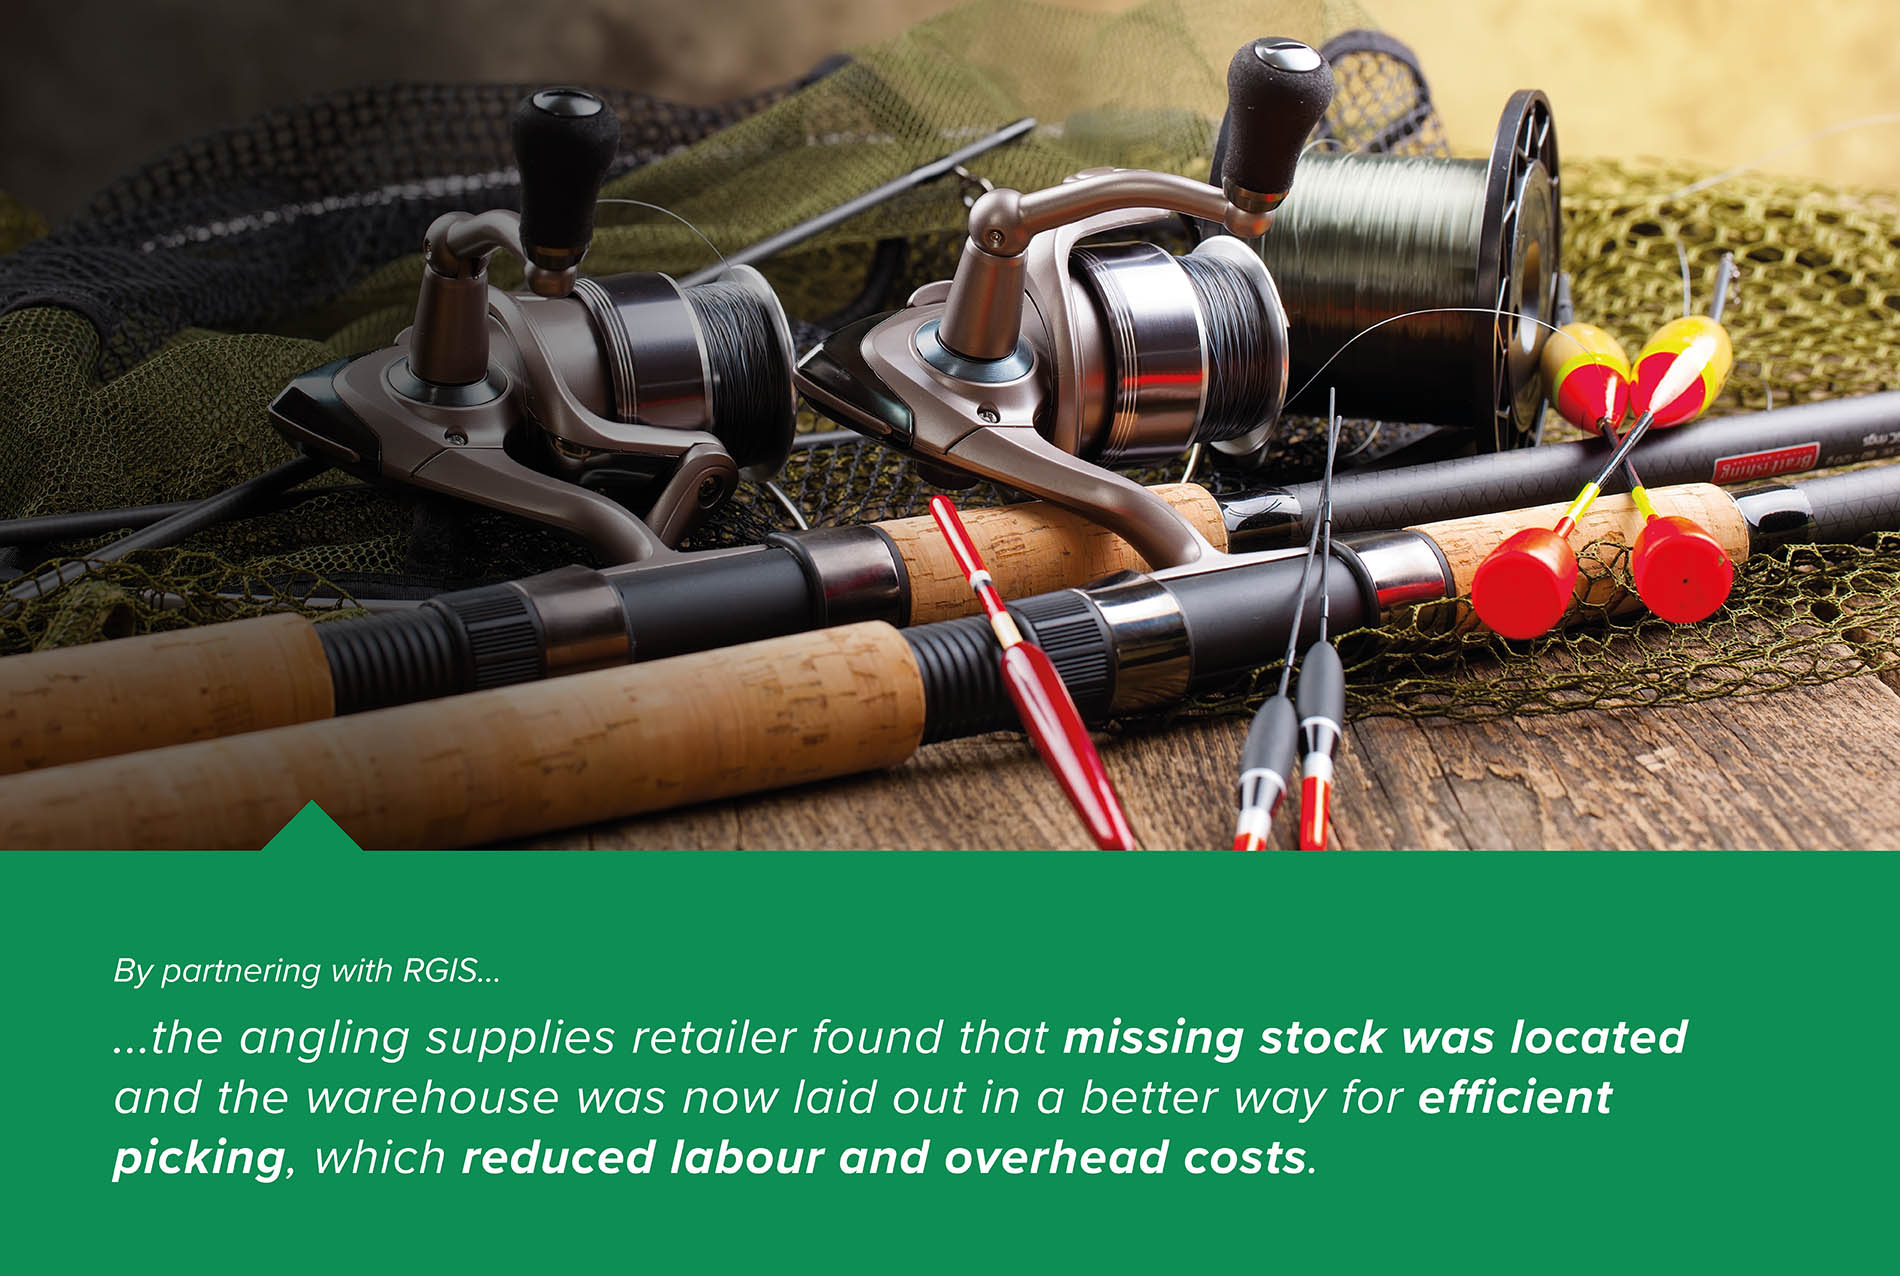 Angling Supplies Retailer Warehouse Relocation Count